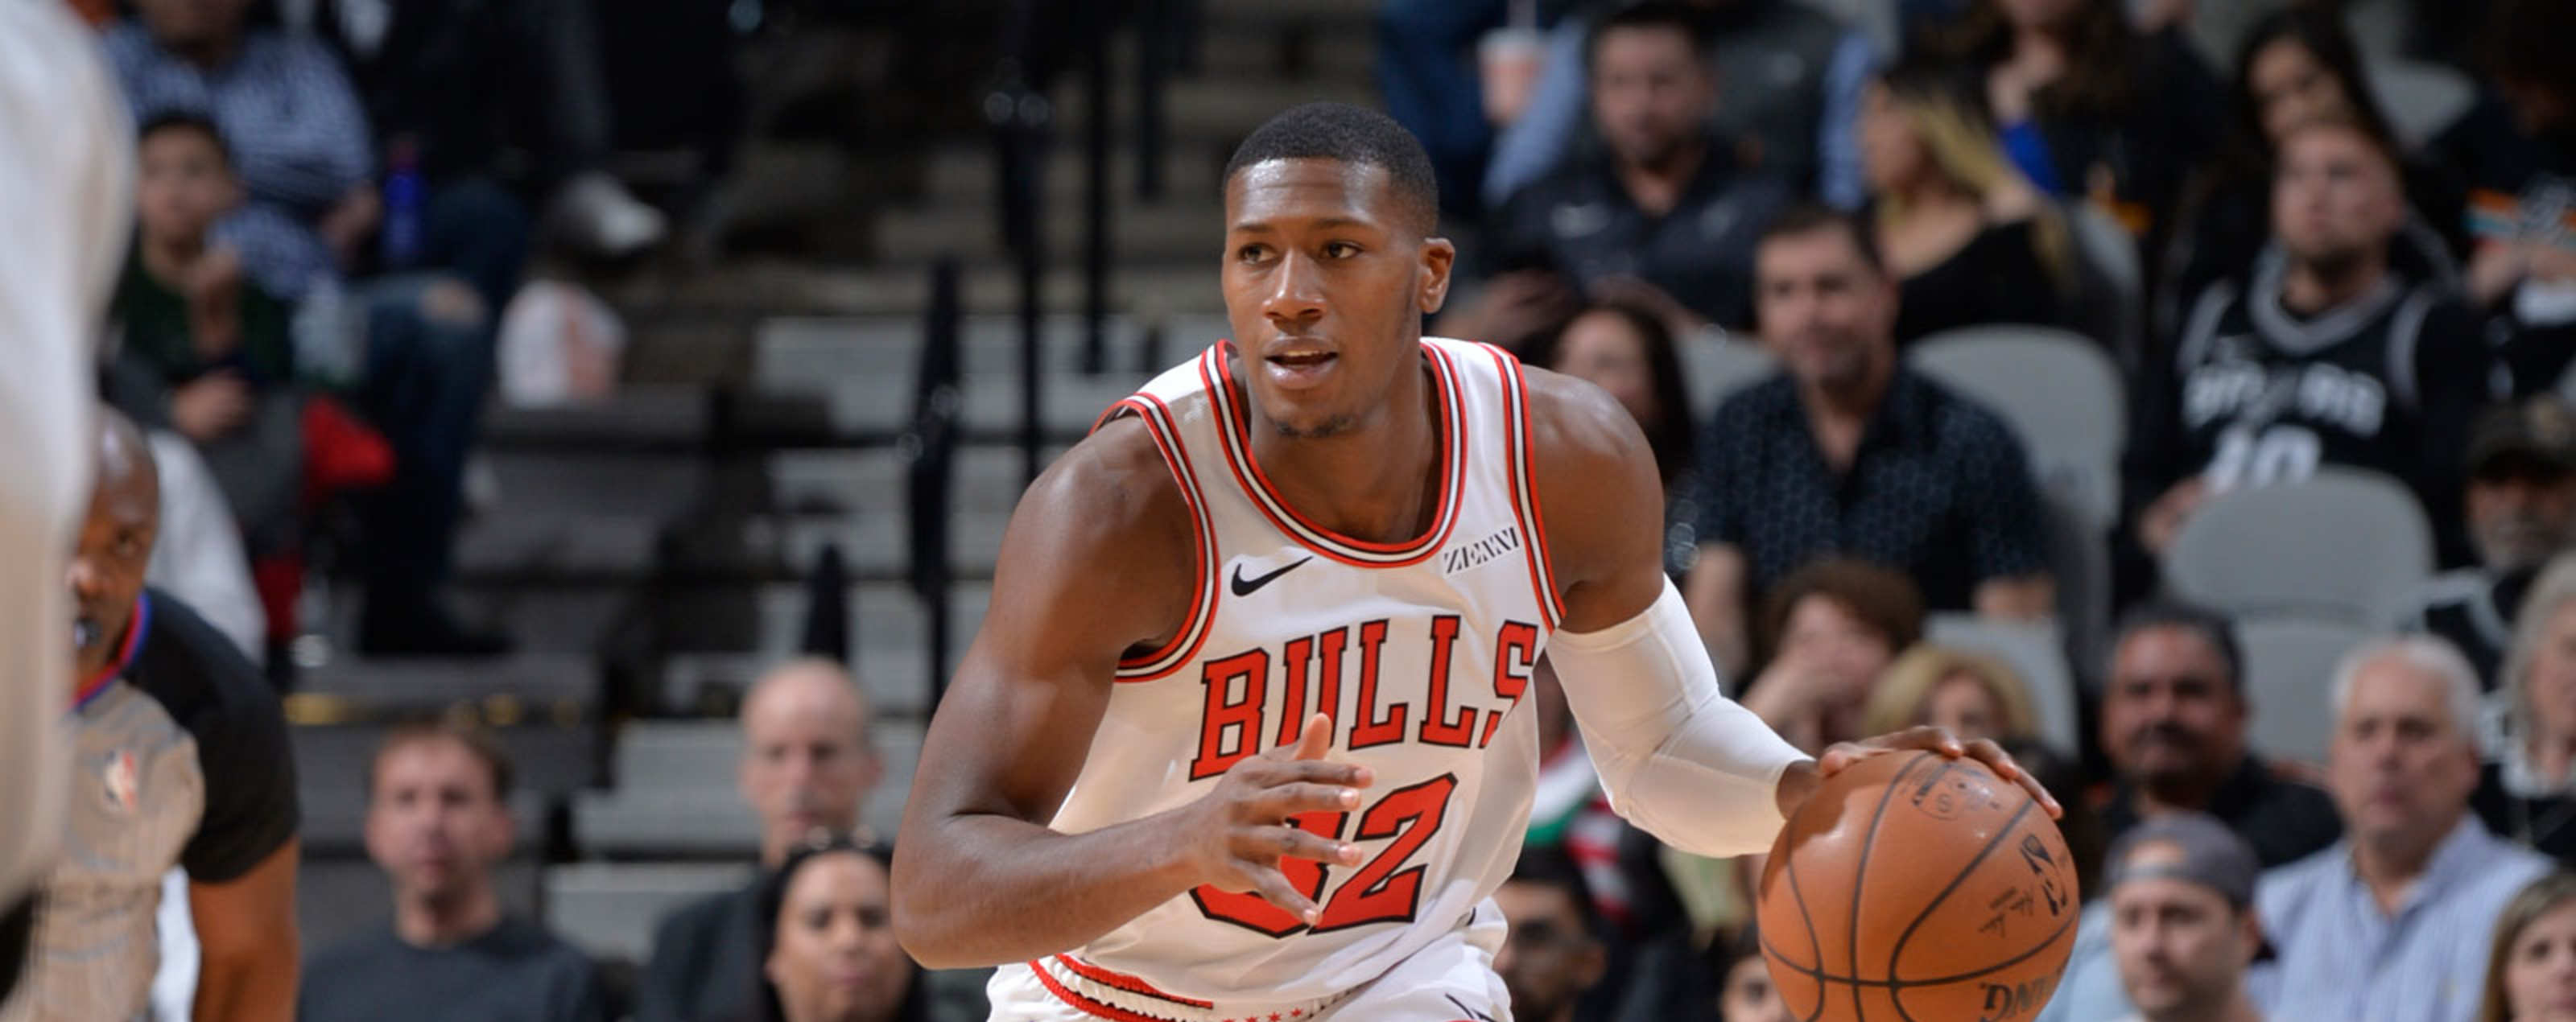 Kris Dunn #32 of the Chicago Bulls handles the ball against the San Antonio Spurson December 15, 2018 at the AT&T Center in San Antonio, Texas.